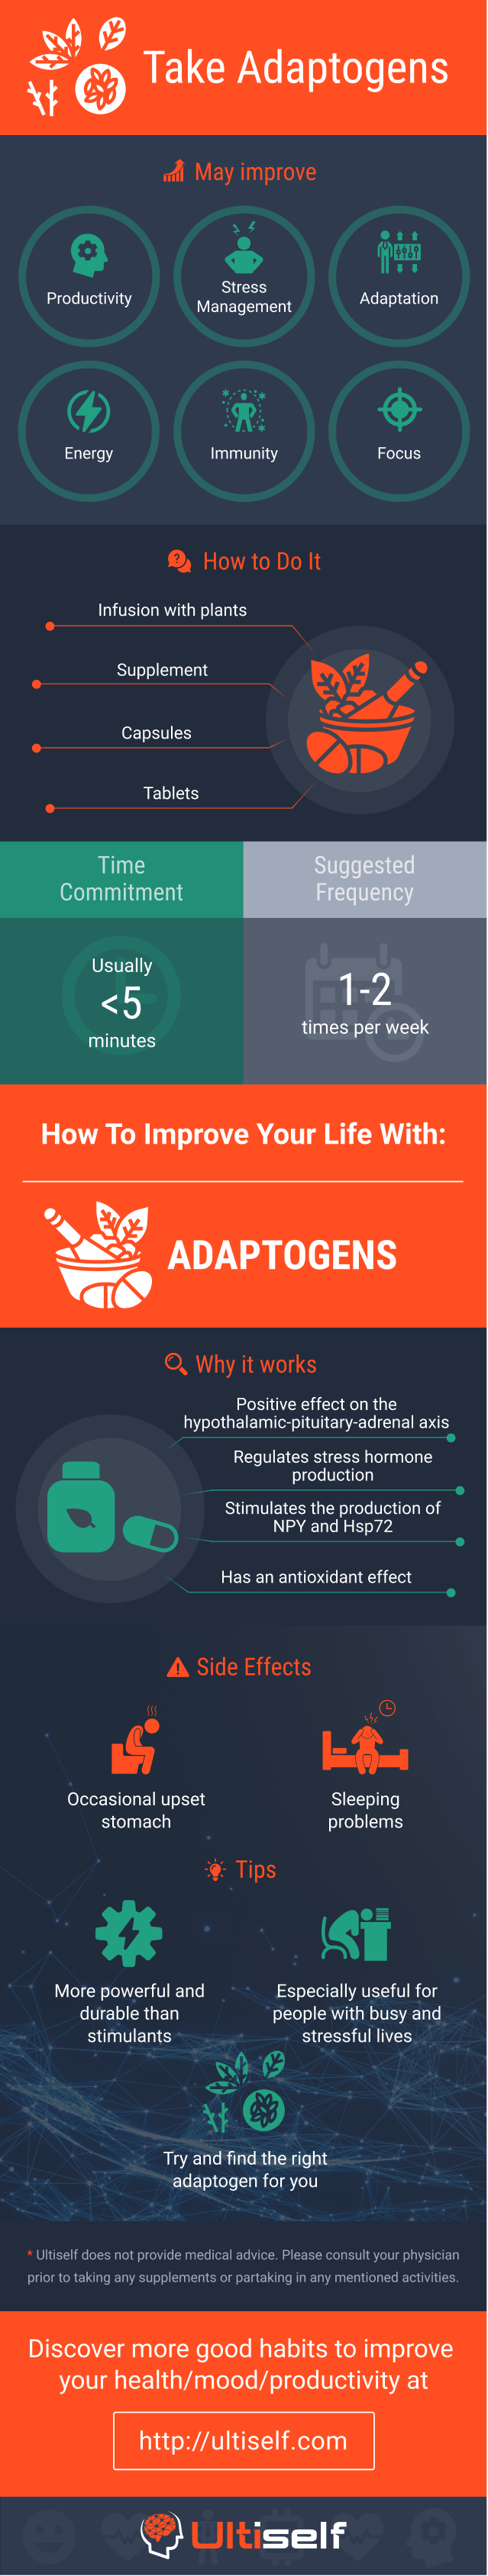 Take Adaptogens infographic